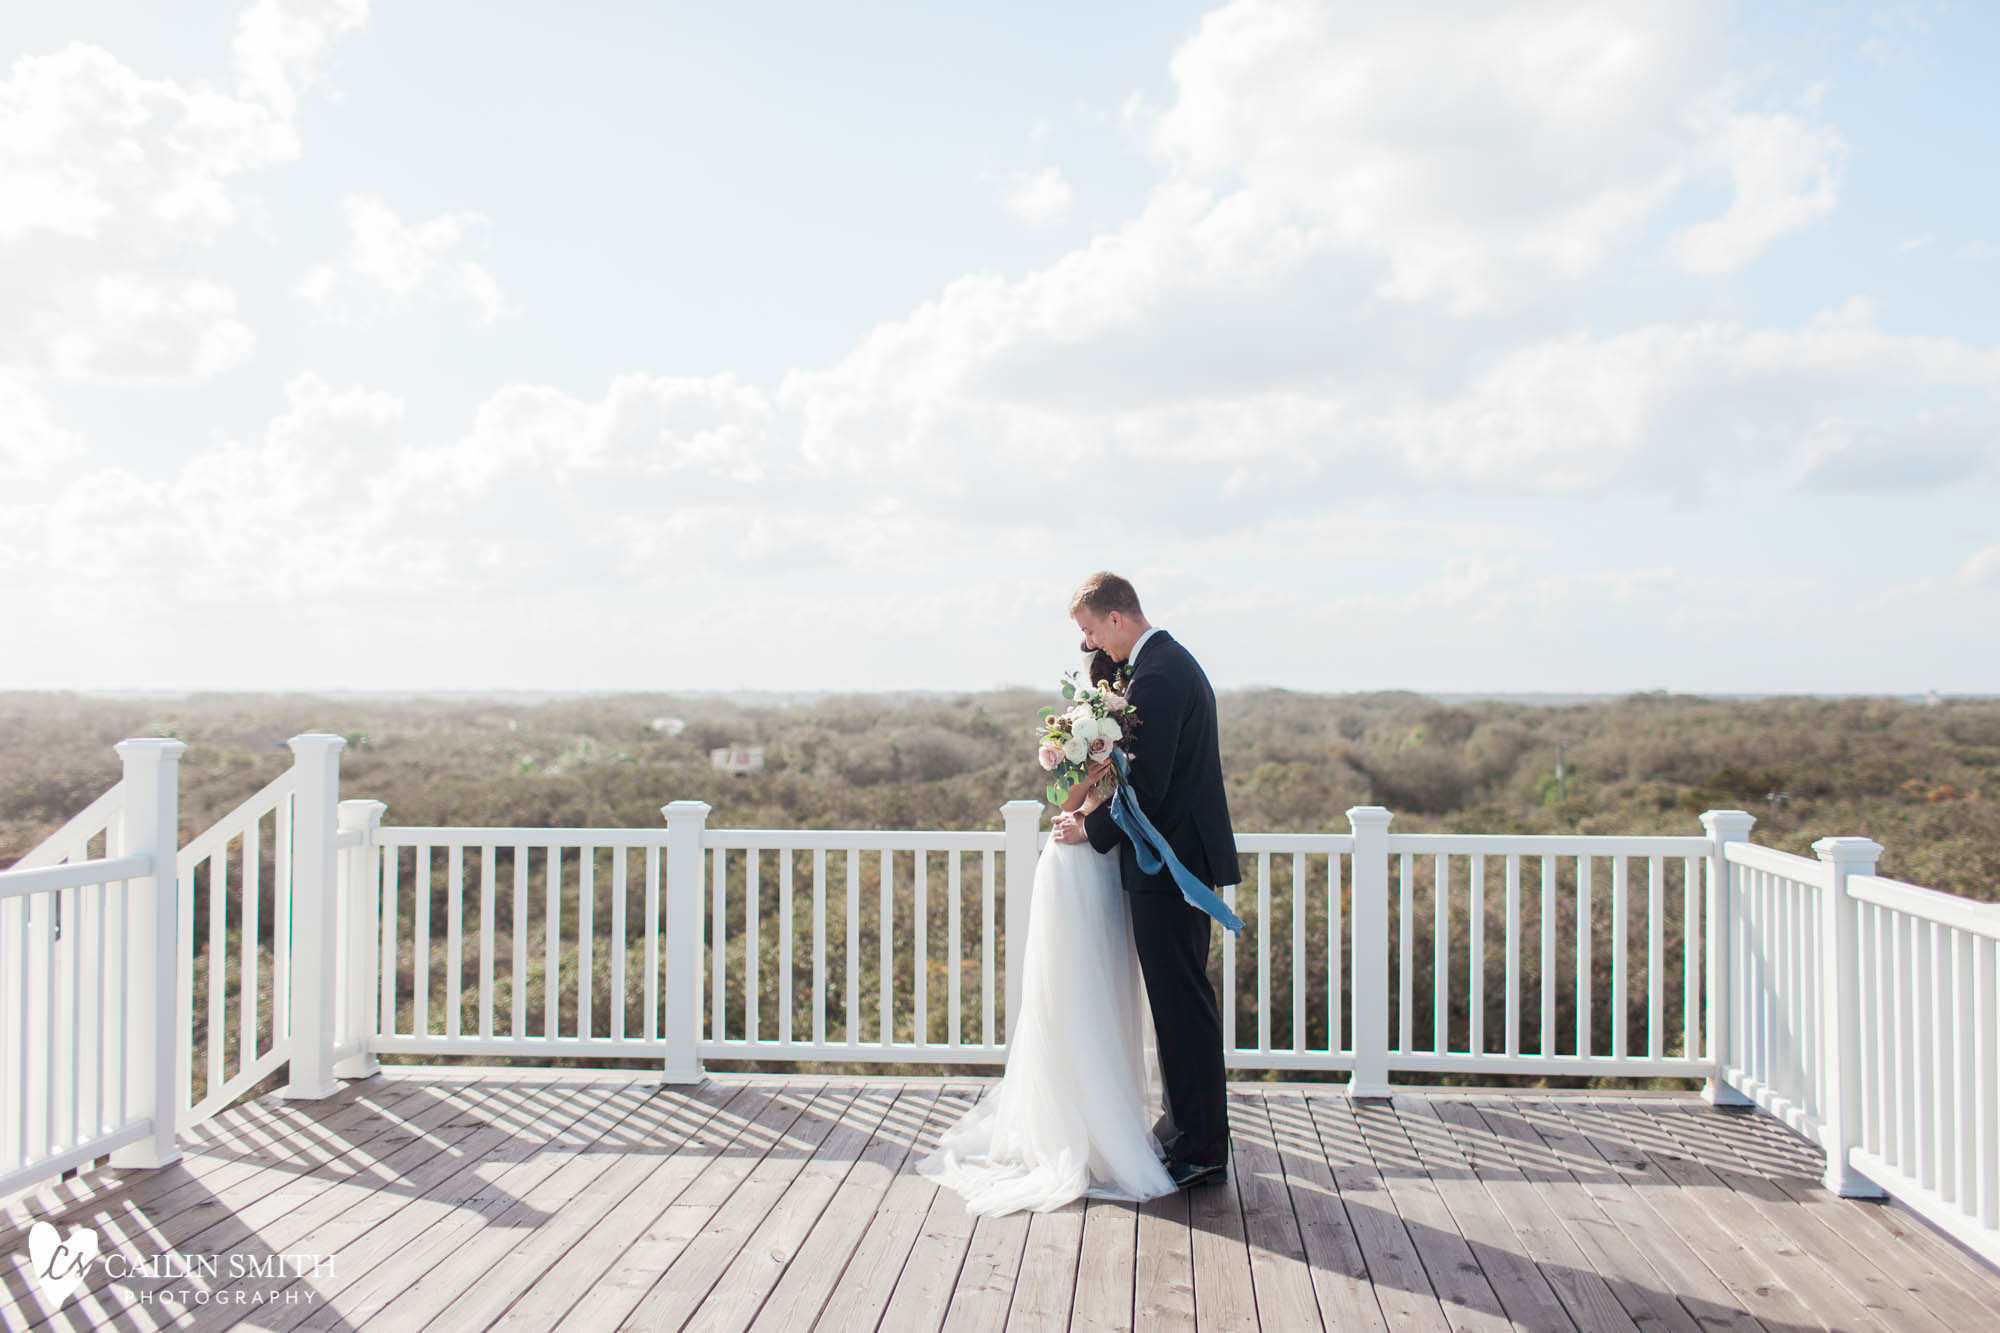 Christina_Matt_Castlegate_Vilano_Beach_Wedding_Photography_0030.jpg